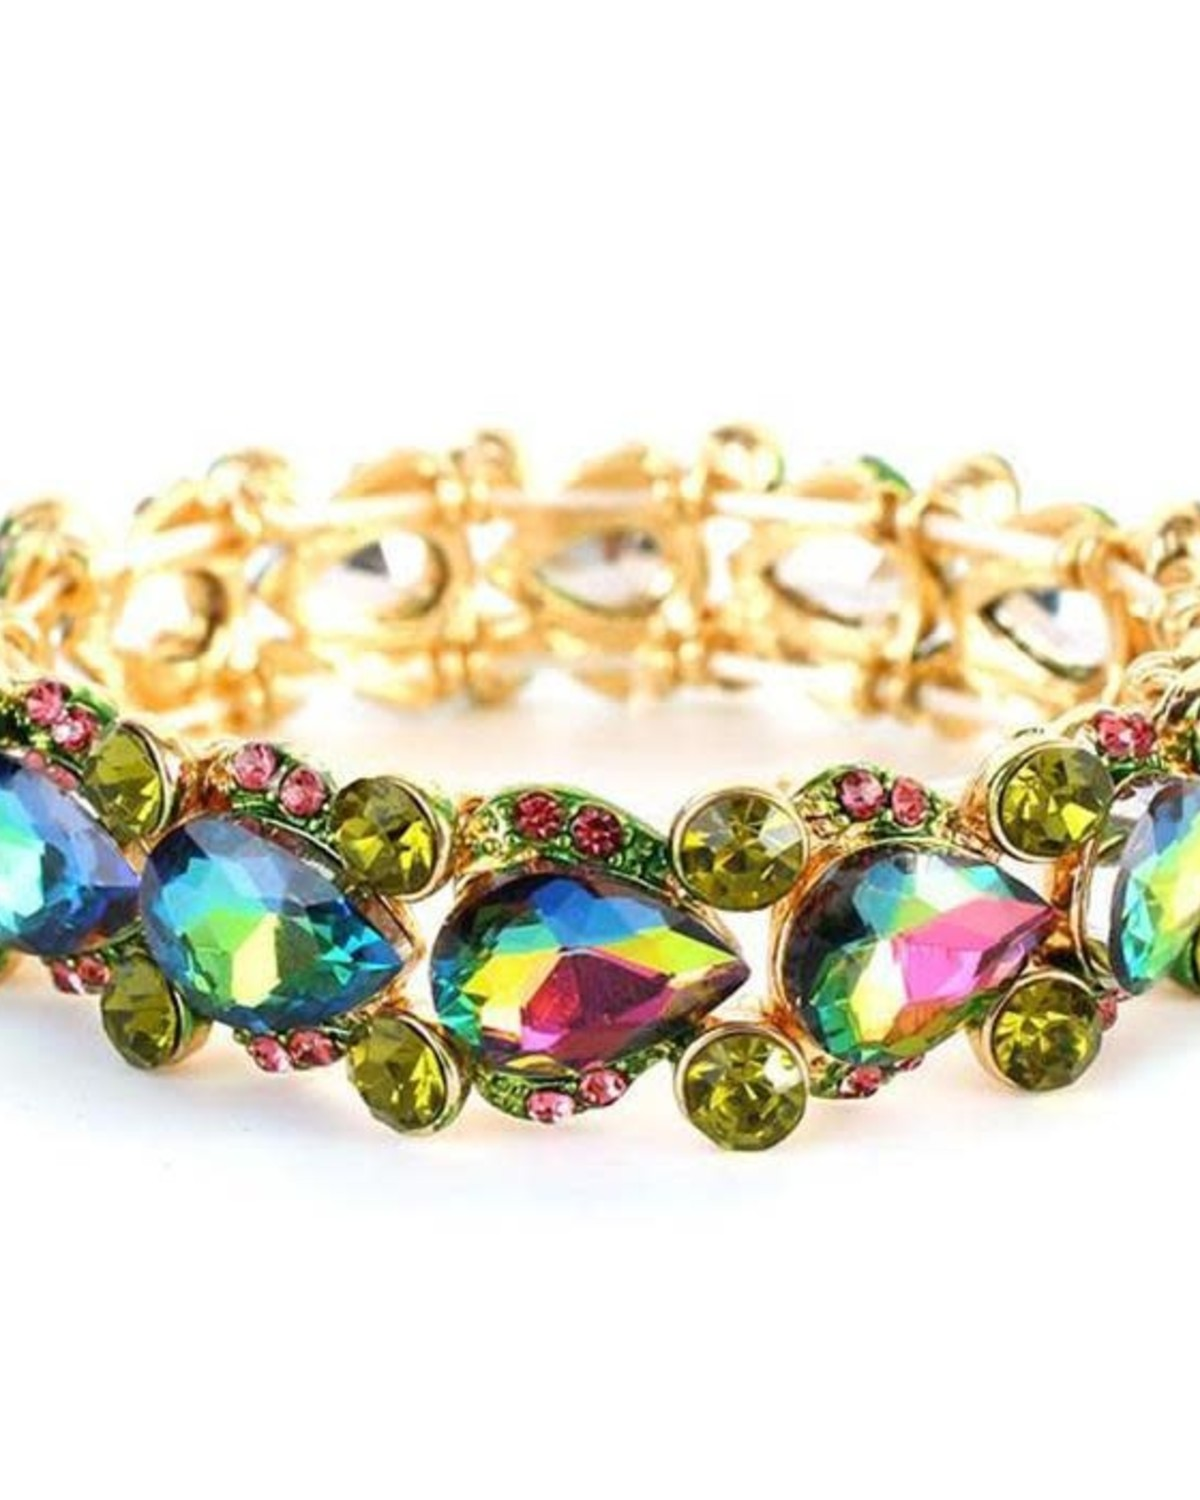 Royal Queen Bracelet